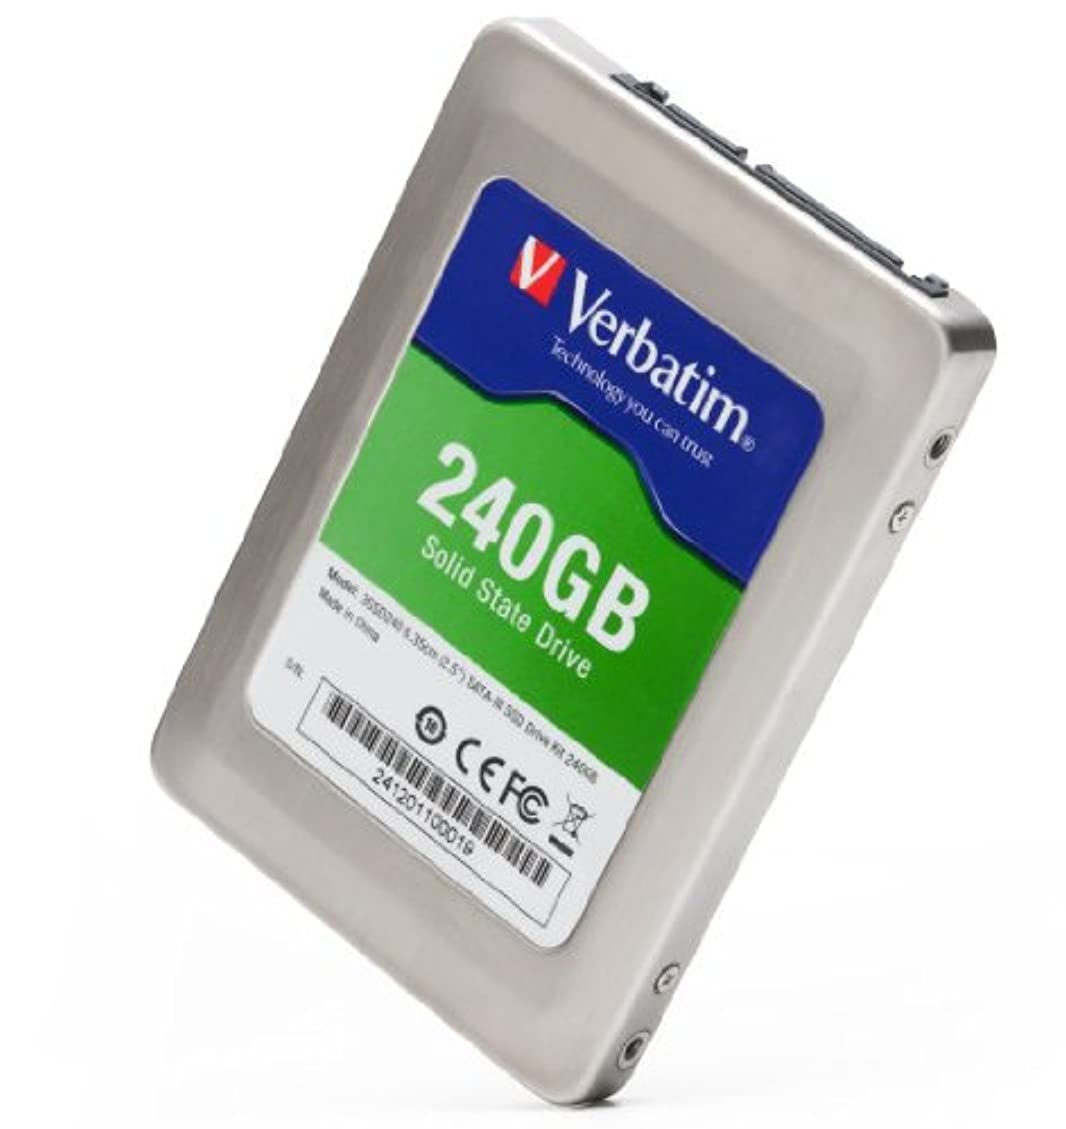 DATARAM 240GB 2.5 SSD Drive Solid State Drive Compatible with ASROCK FATAL1TY H170 Performance